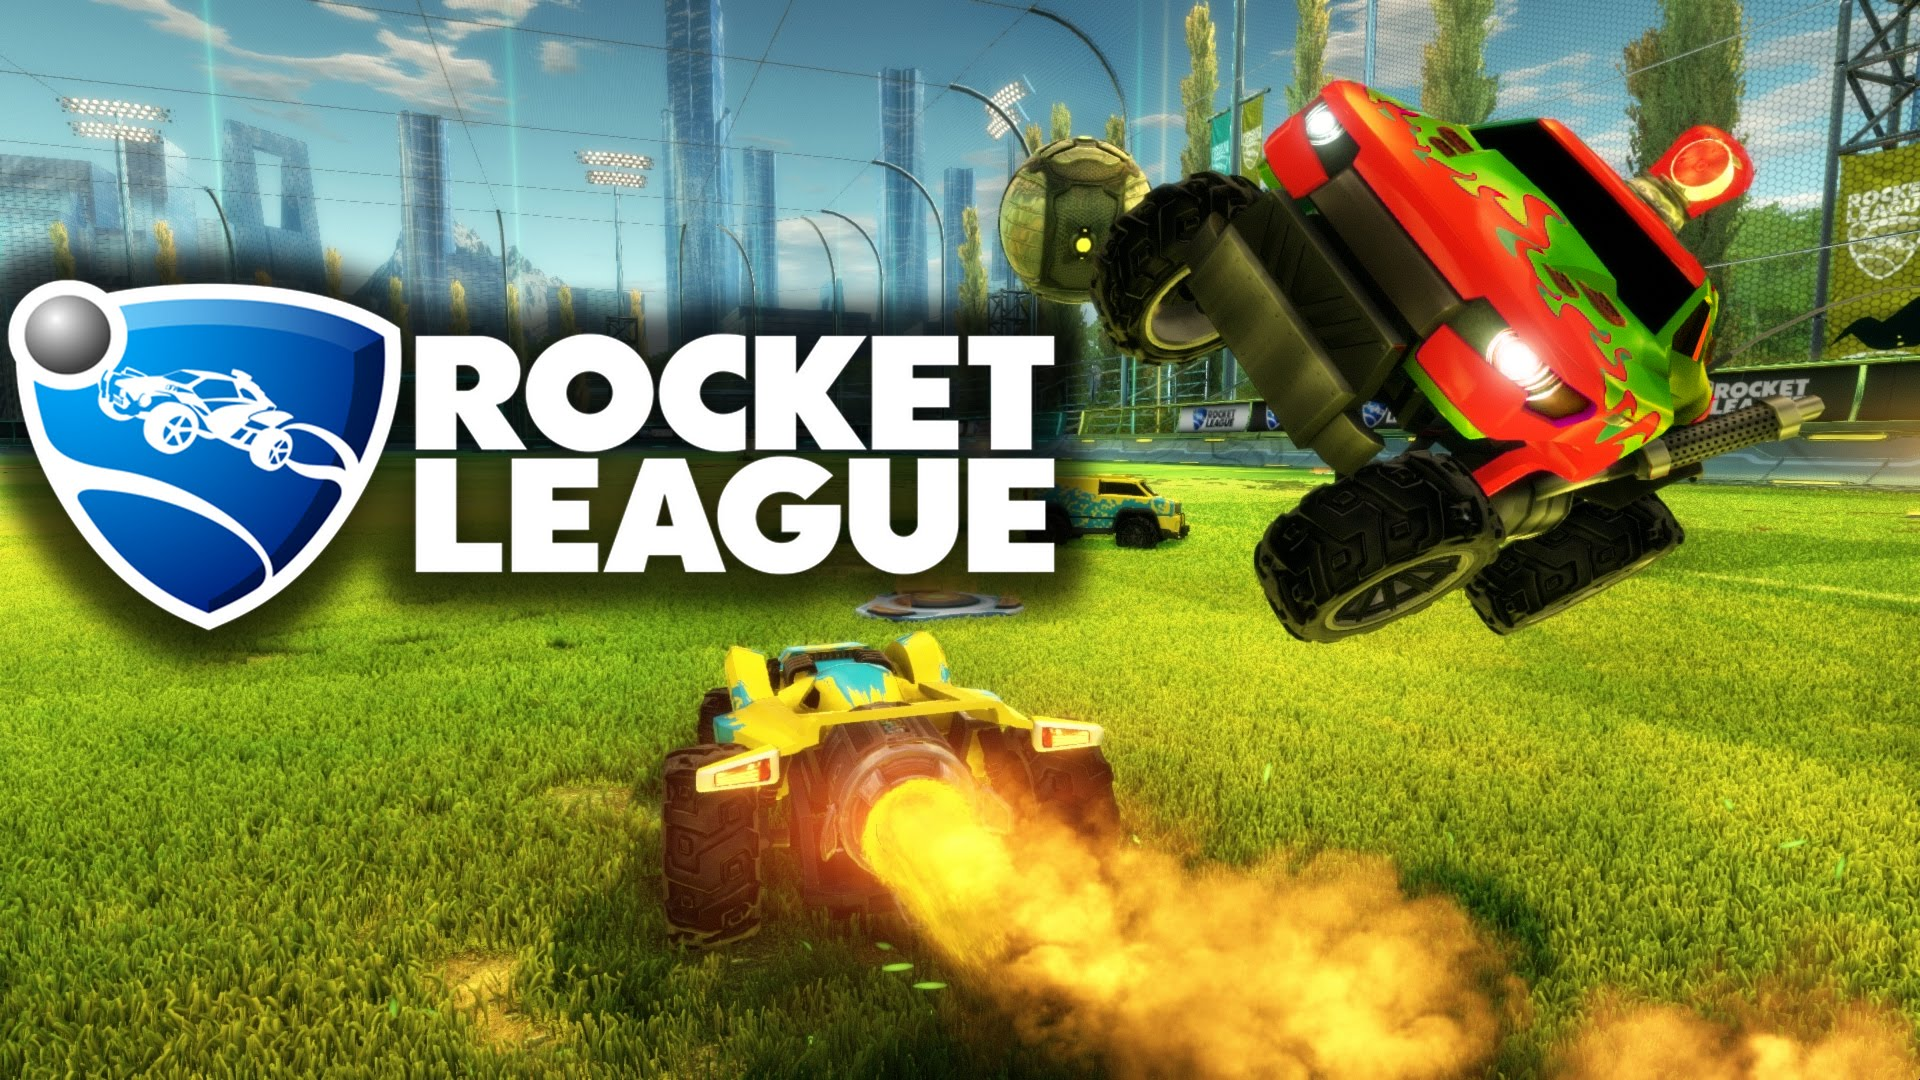 Rocket League Wallpapers Pictures Images